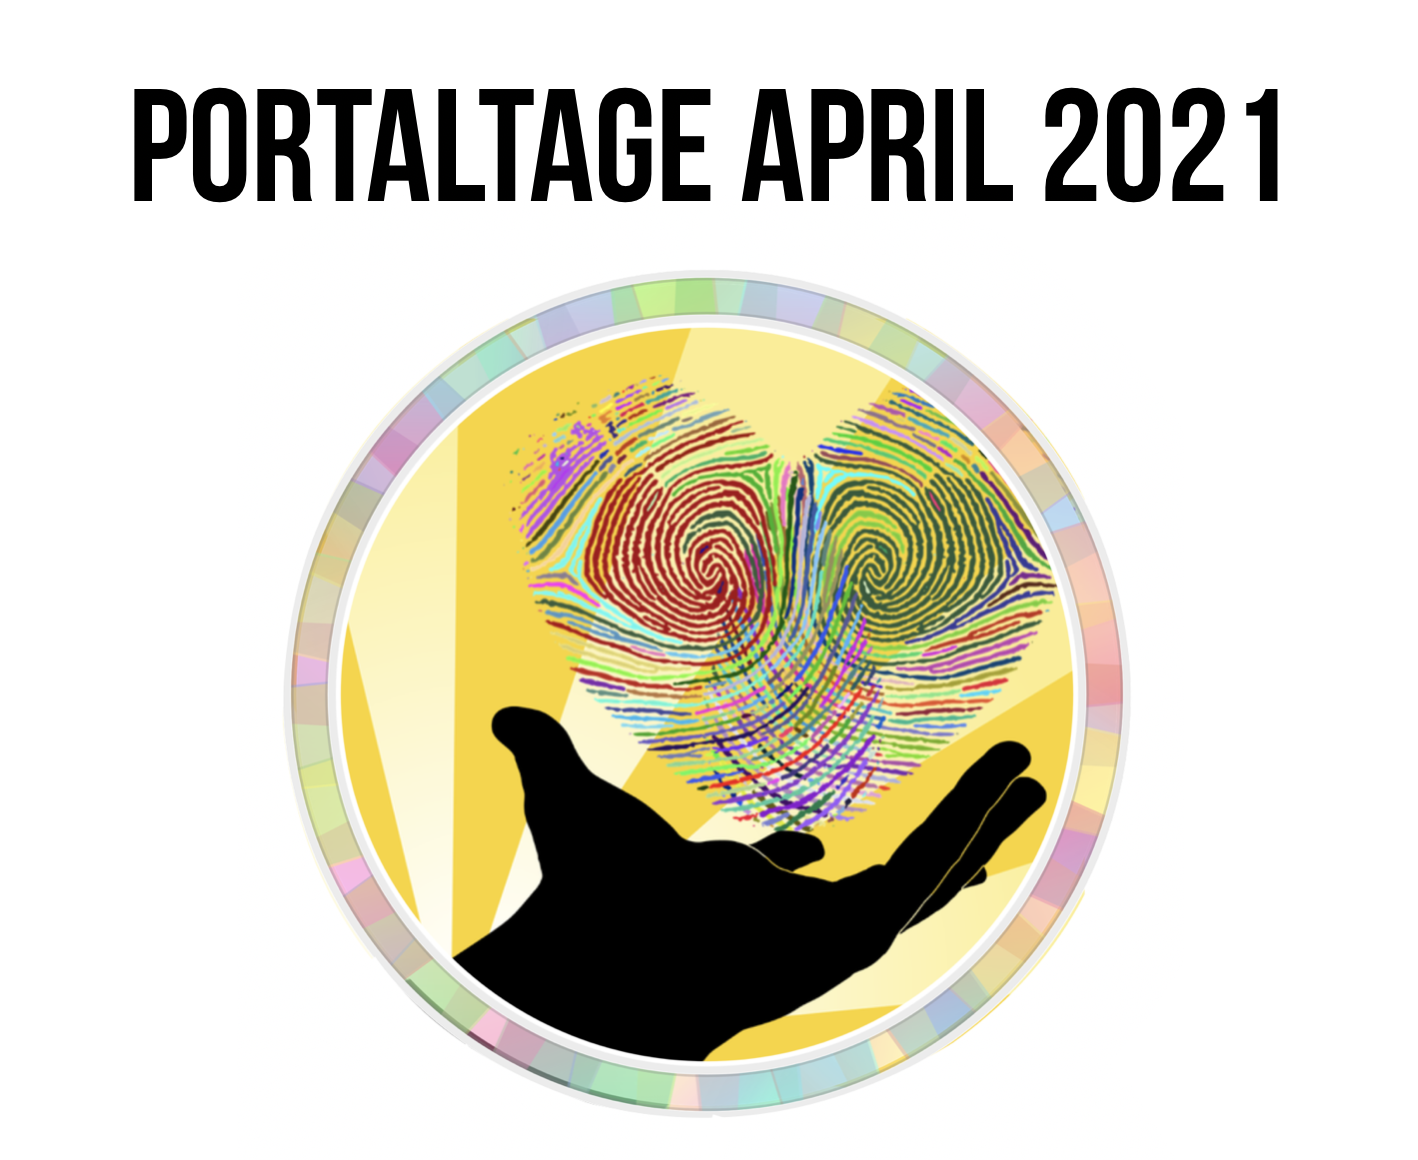 Portaltage im April 2021